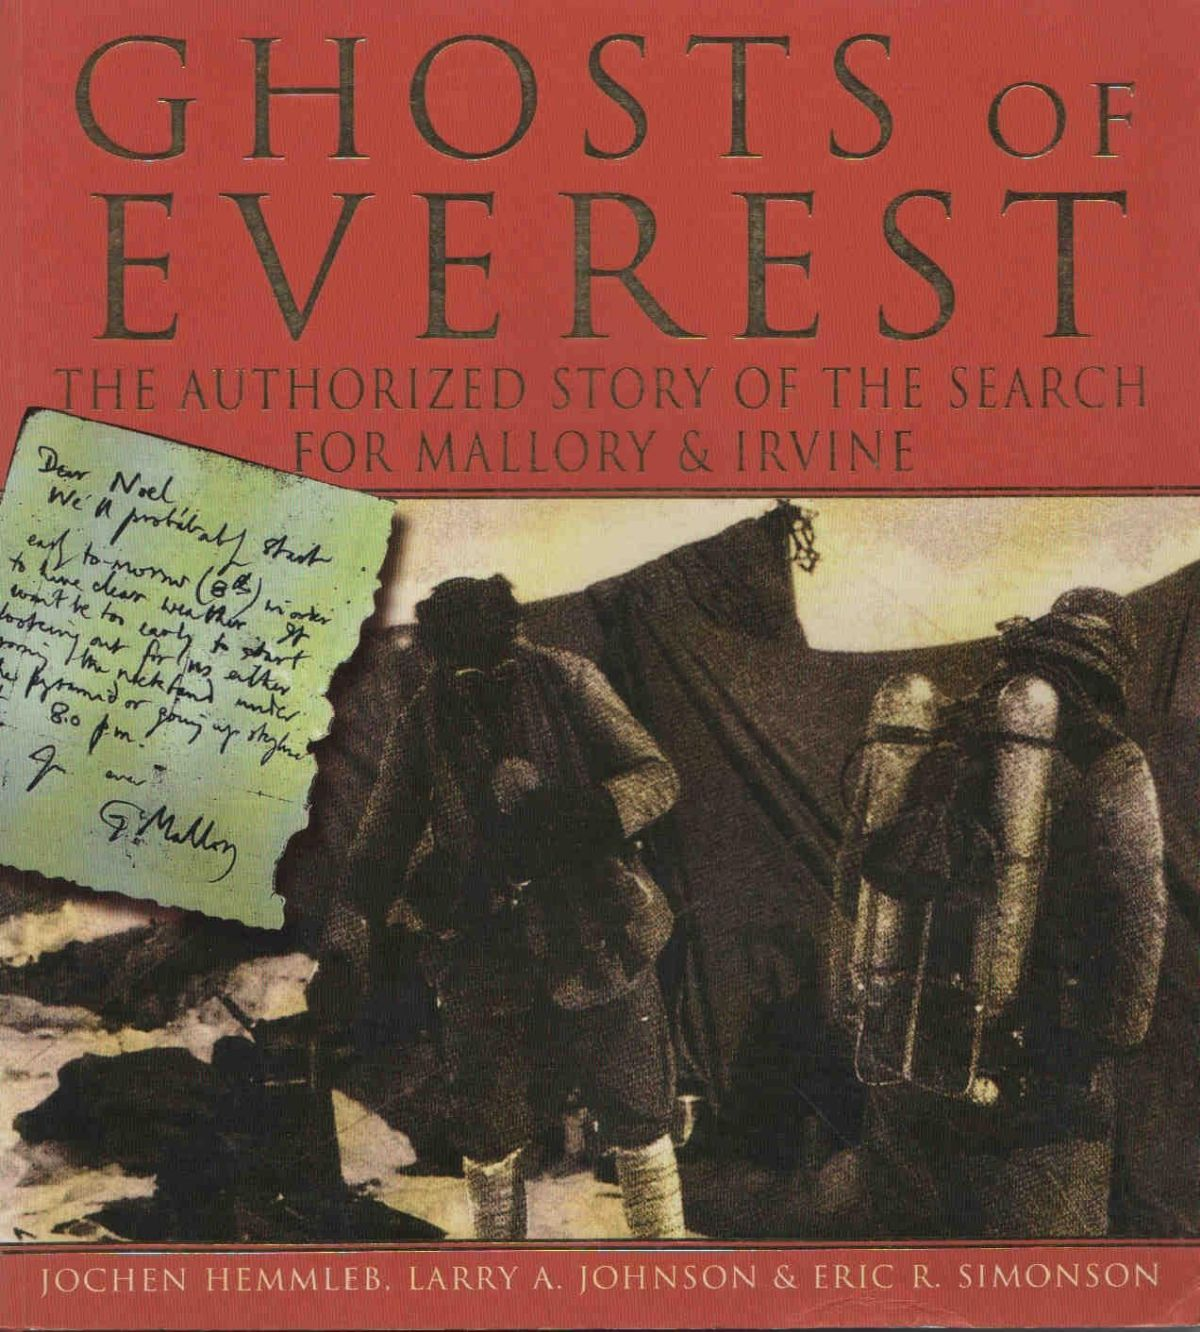 GHOSTS OF EVEREST: The Authorised Story of The Search for Mallory & Irvine